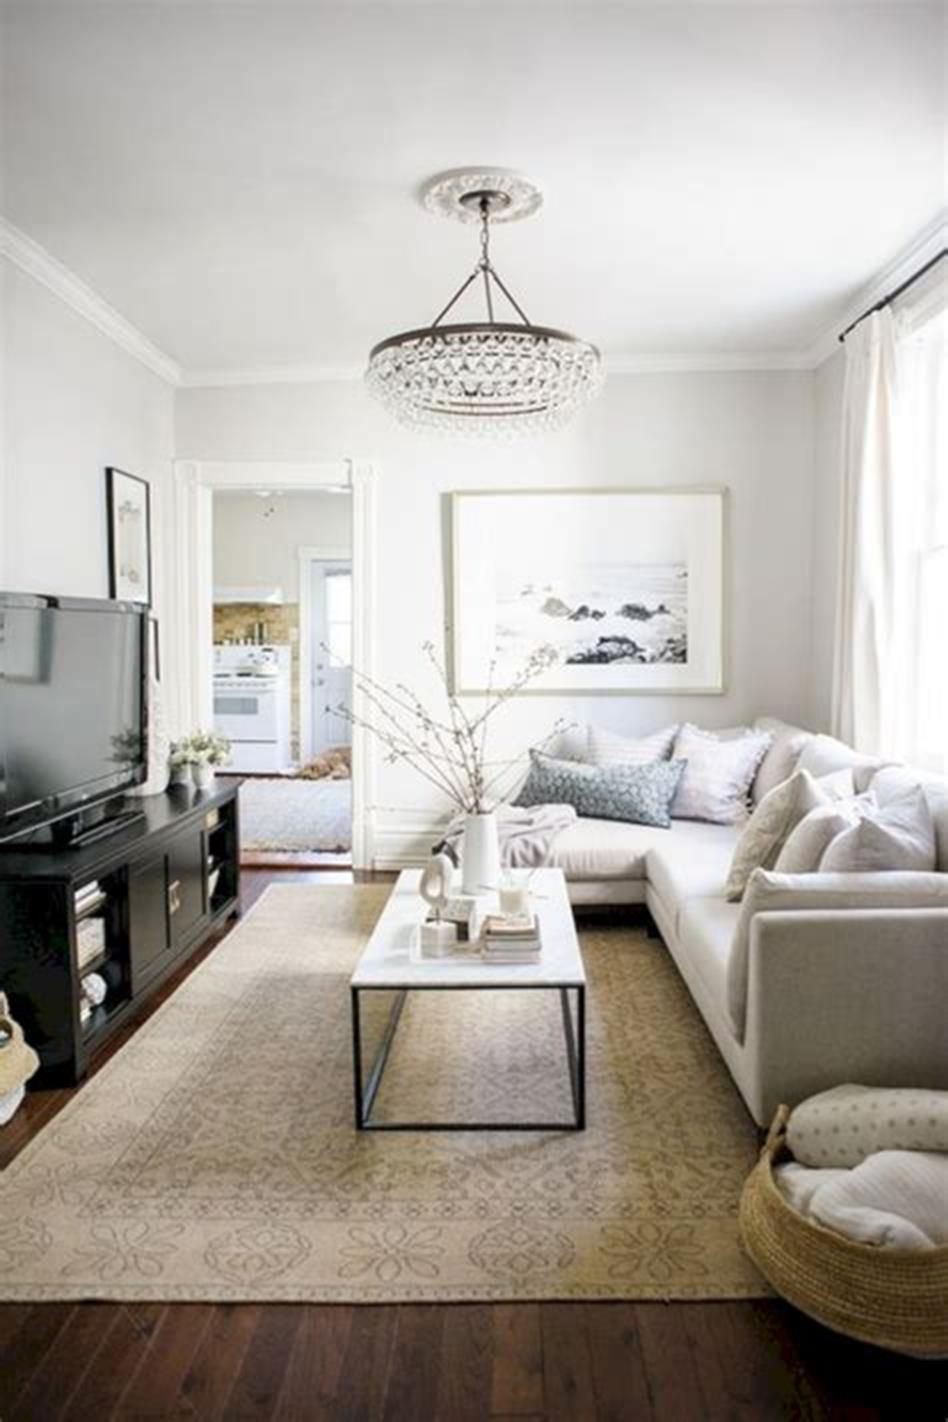 45 Simple Living Room Decorating Ideas On A Budget